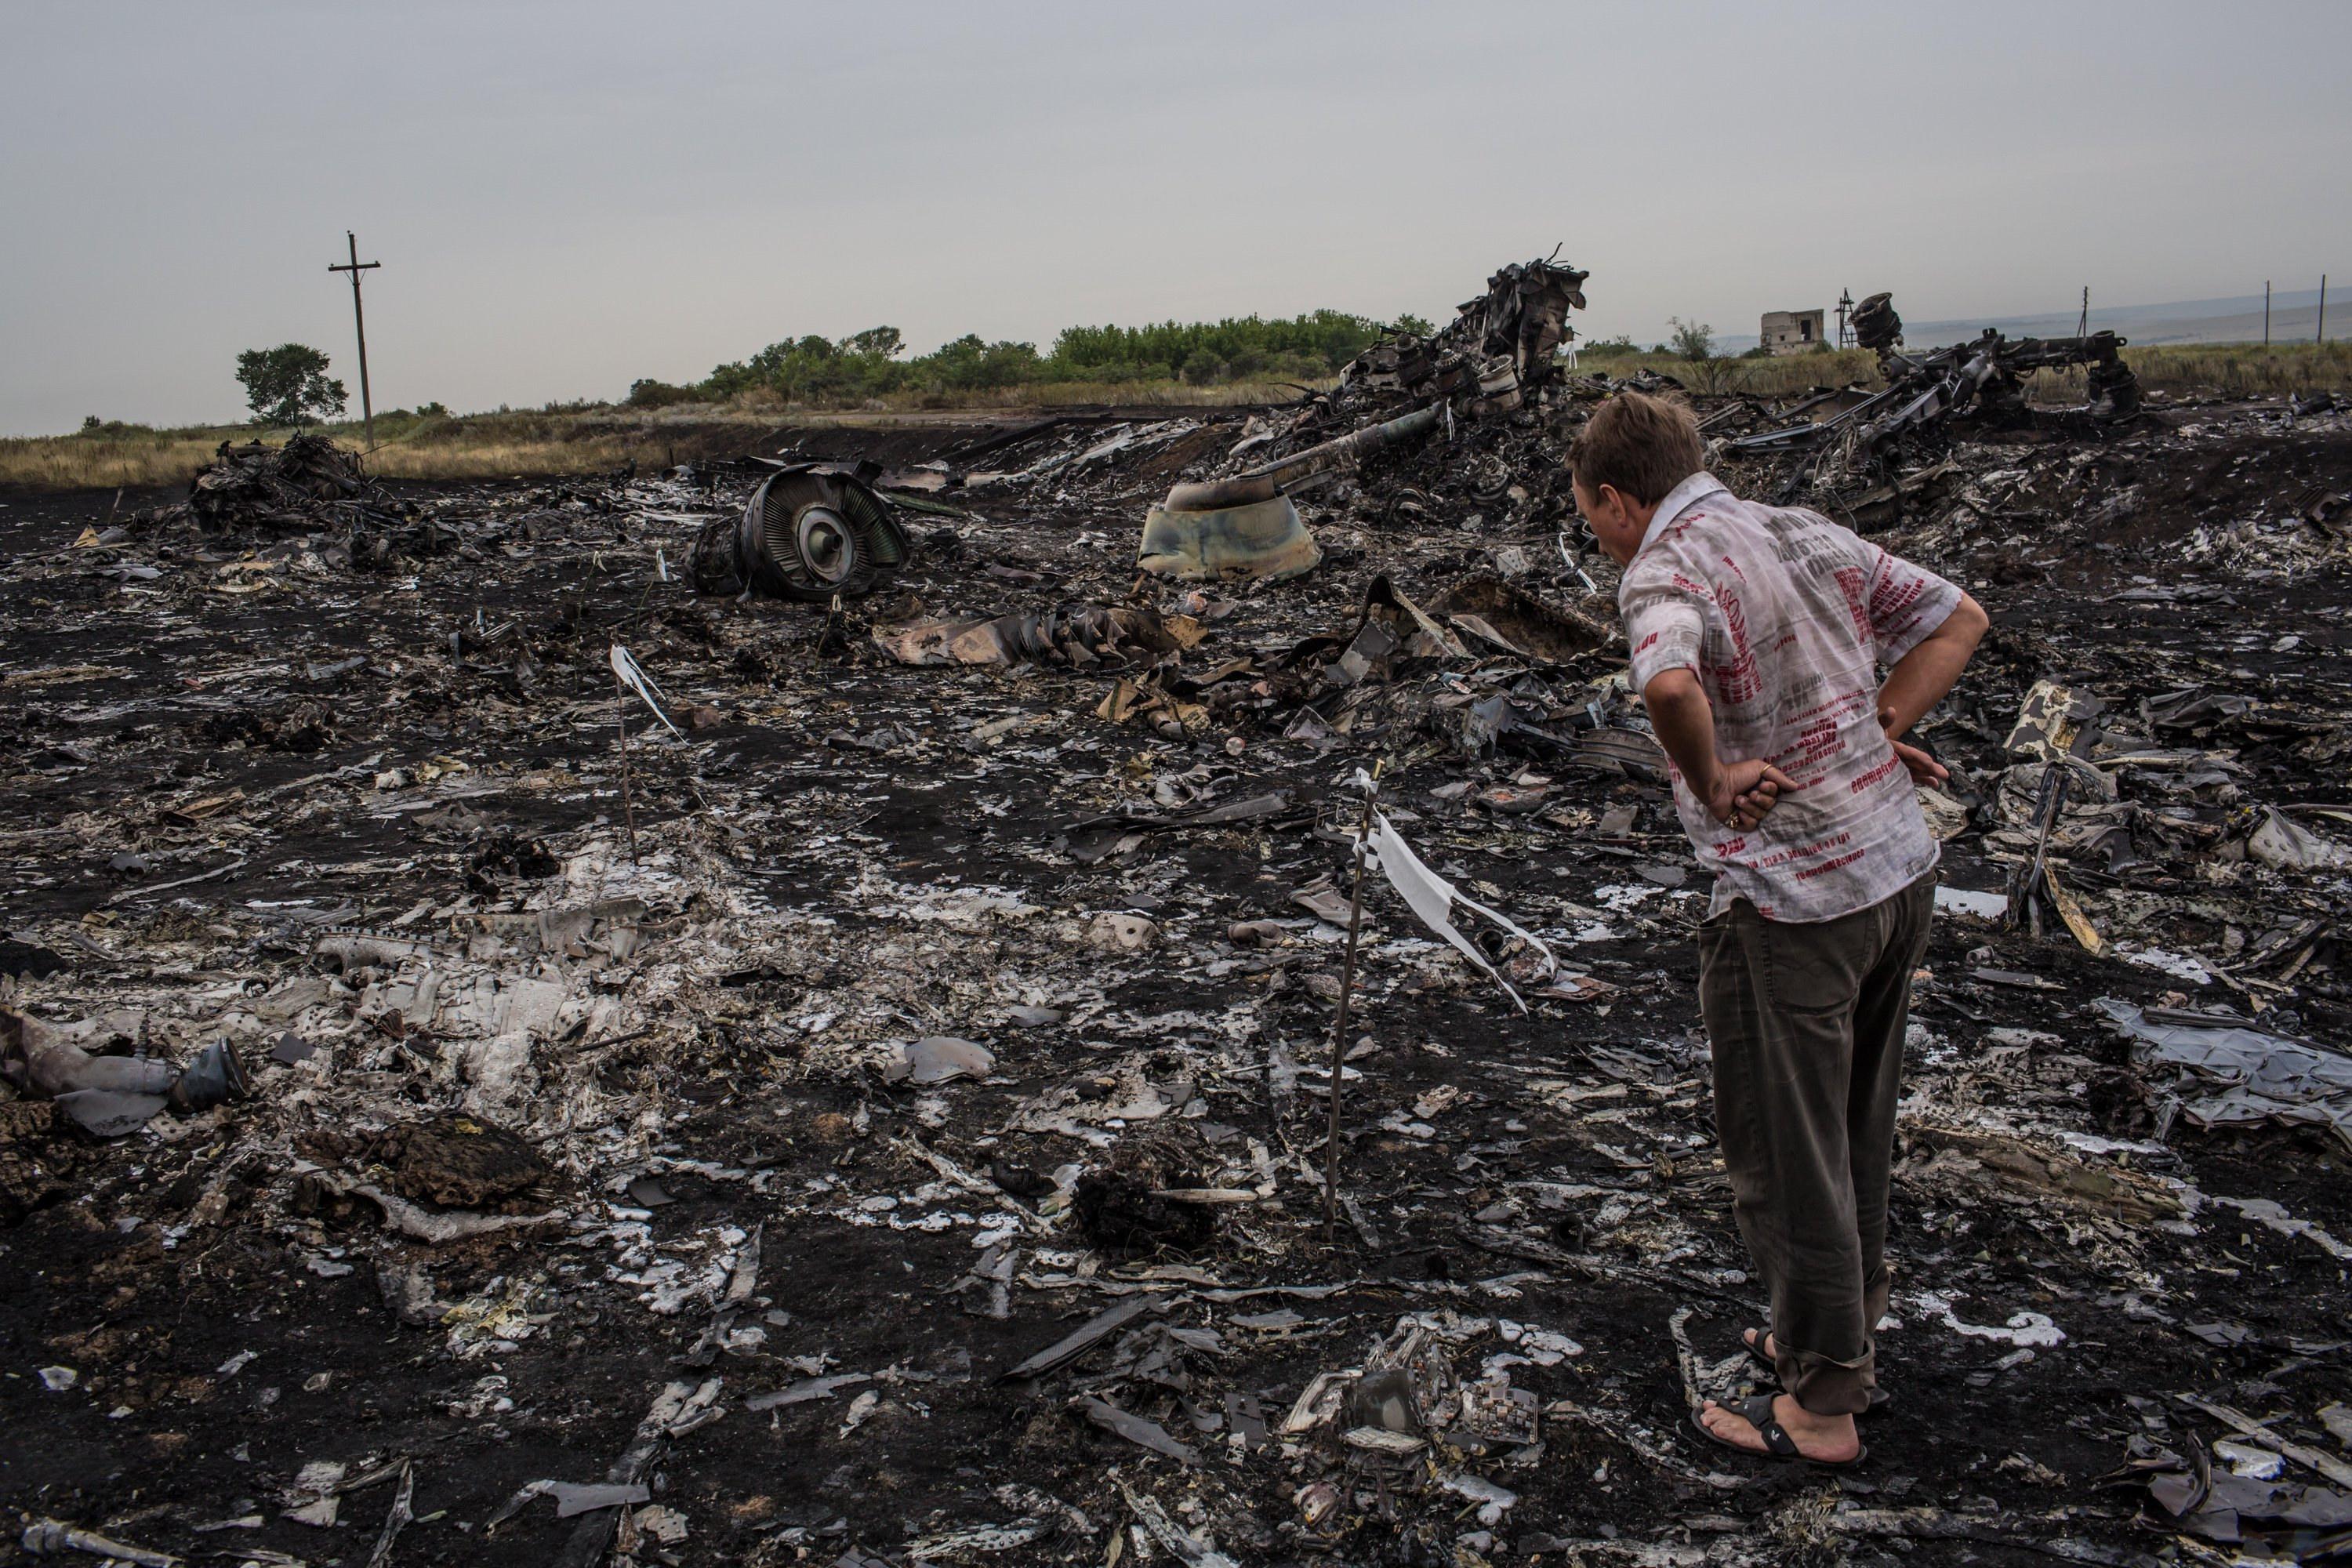 A man looks at debris from the Malaysia Airlines plane crash on July 18, 2014 in Grabovka, Ukraine.